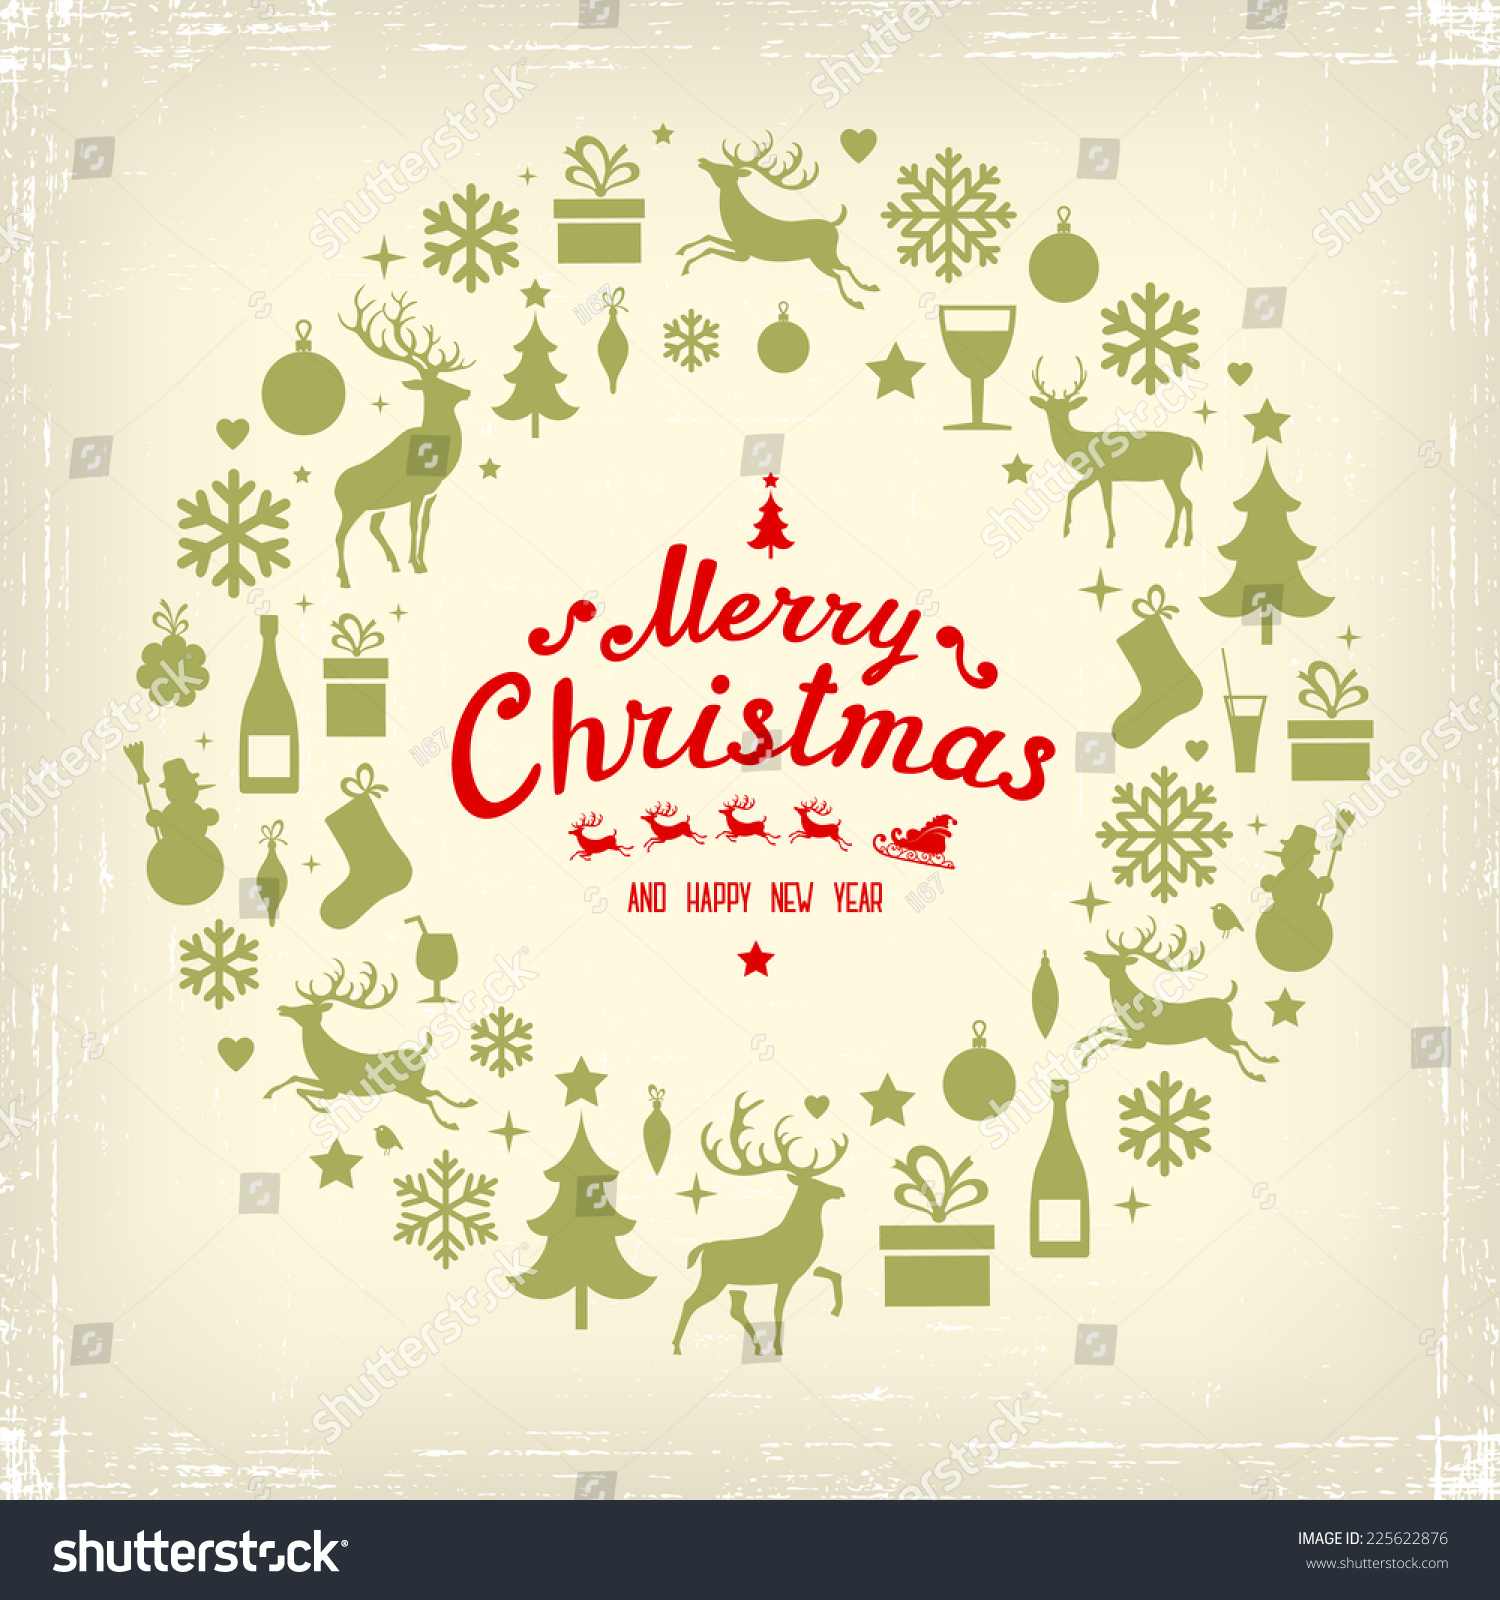 Christmas New Years Greeting Card Stock Vector 225622876 - Shutterstock